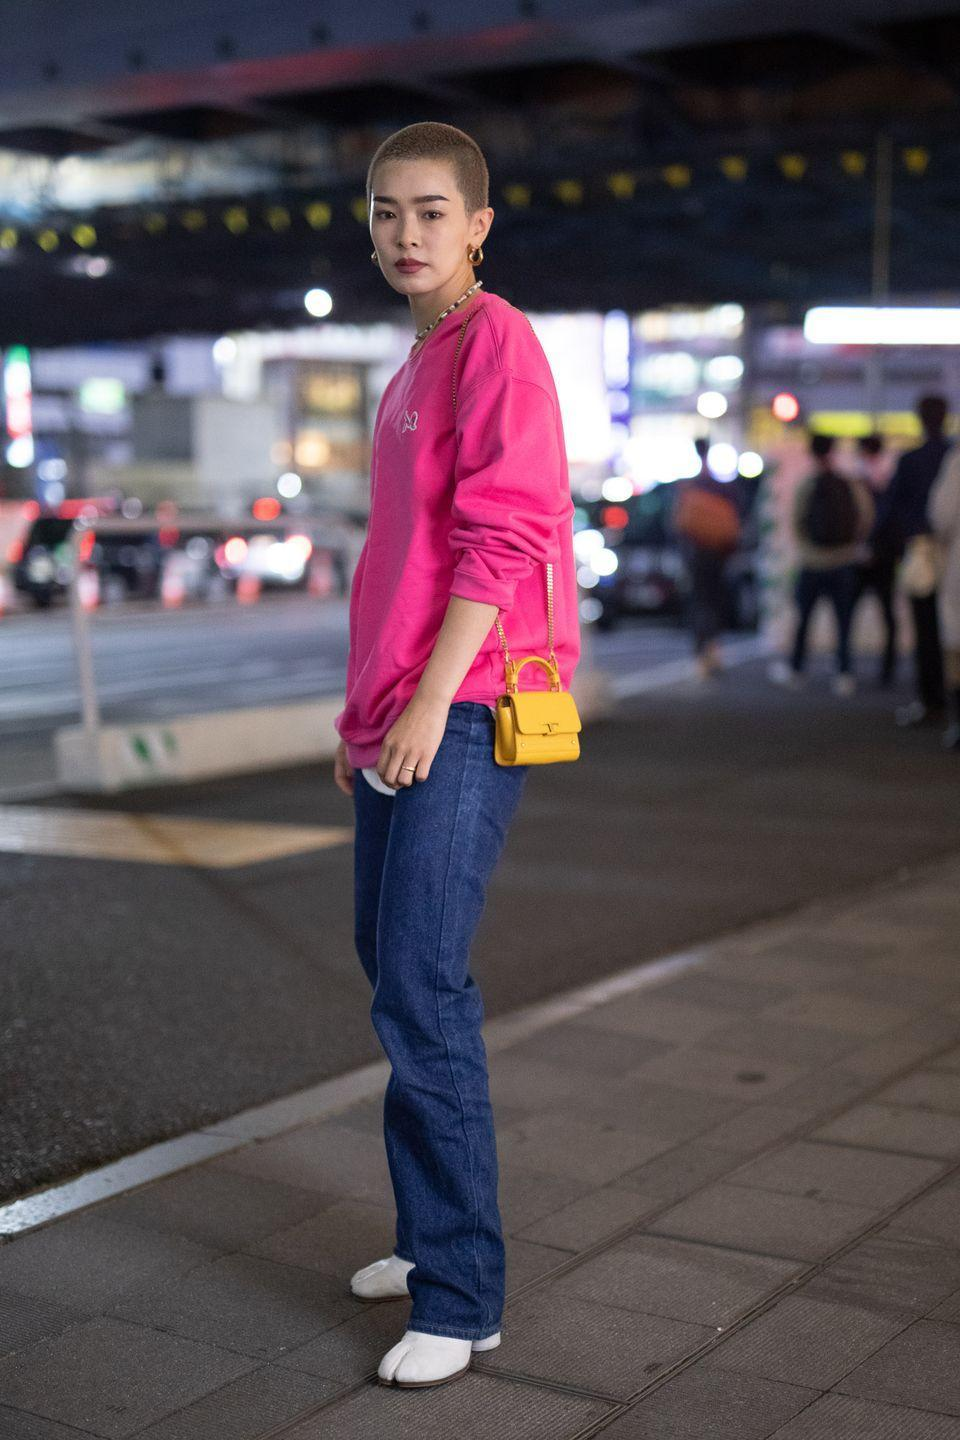 """<p>One quick and easy way to dress up Tokyo's graphic athleisure trend is to add elevated accessories. Consider taking it a step further by experimenting with pops of color. </p><p><strong>Get the look: RichardandGrace</strong> BTM crewneck, $200, <a href=""""https://www.richardandgrace.com/collections/bmt-tx/products/navy-btm-crewneck"""" rel=""""nofollow noopener"""" target=""""_blank"""" data-ylk=""""slk:richardandgrace.com"""" class=""""link rapid-noclick-resp"""">richardandgrace.com</a>.</p>"""